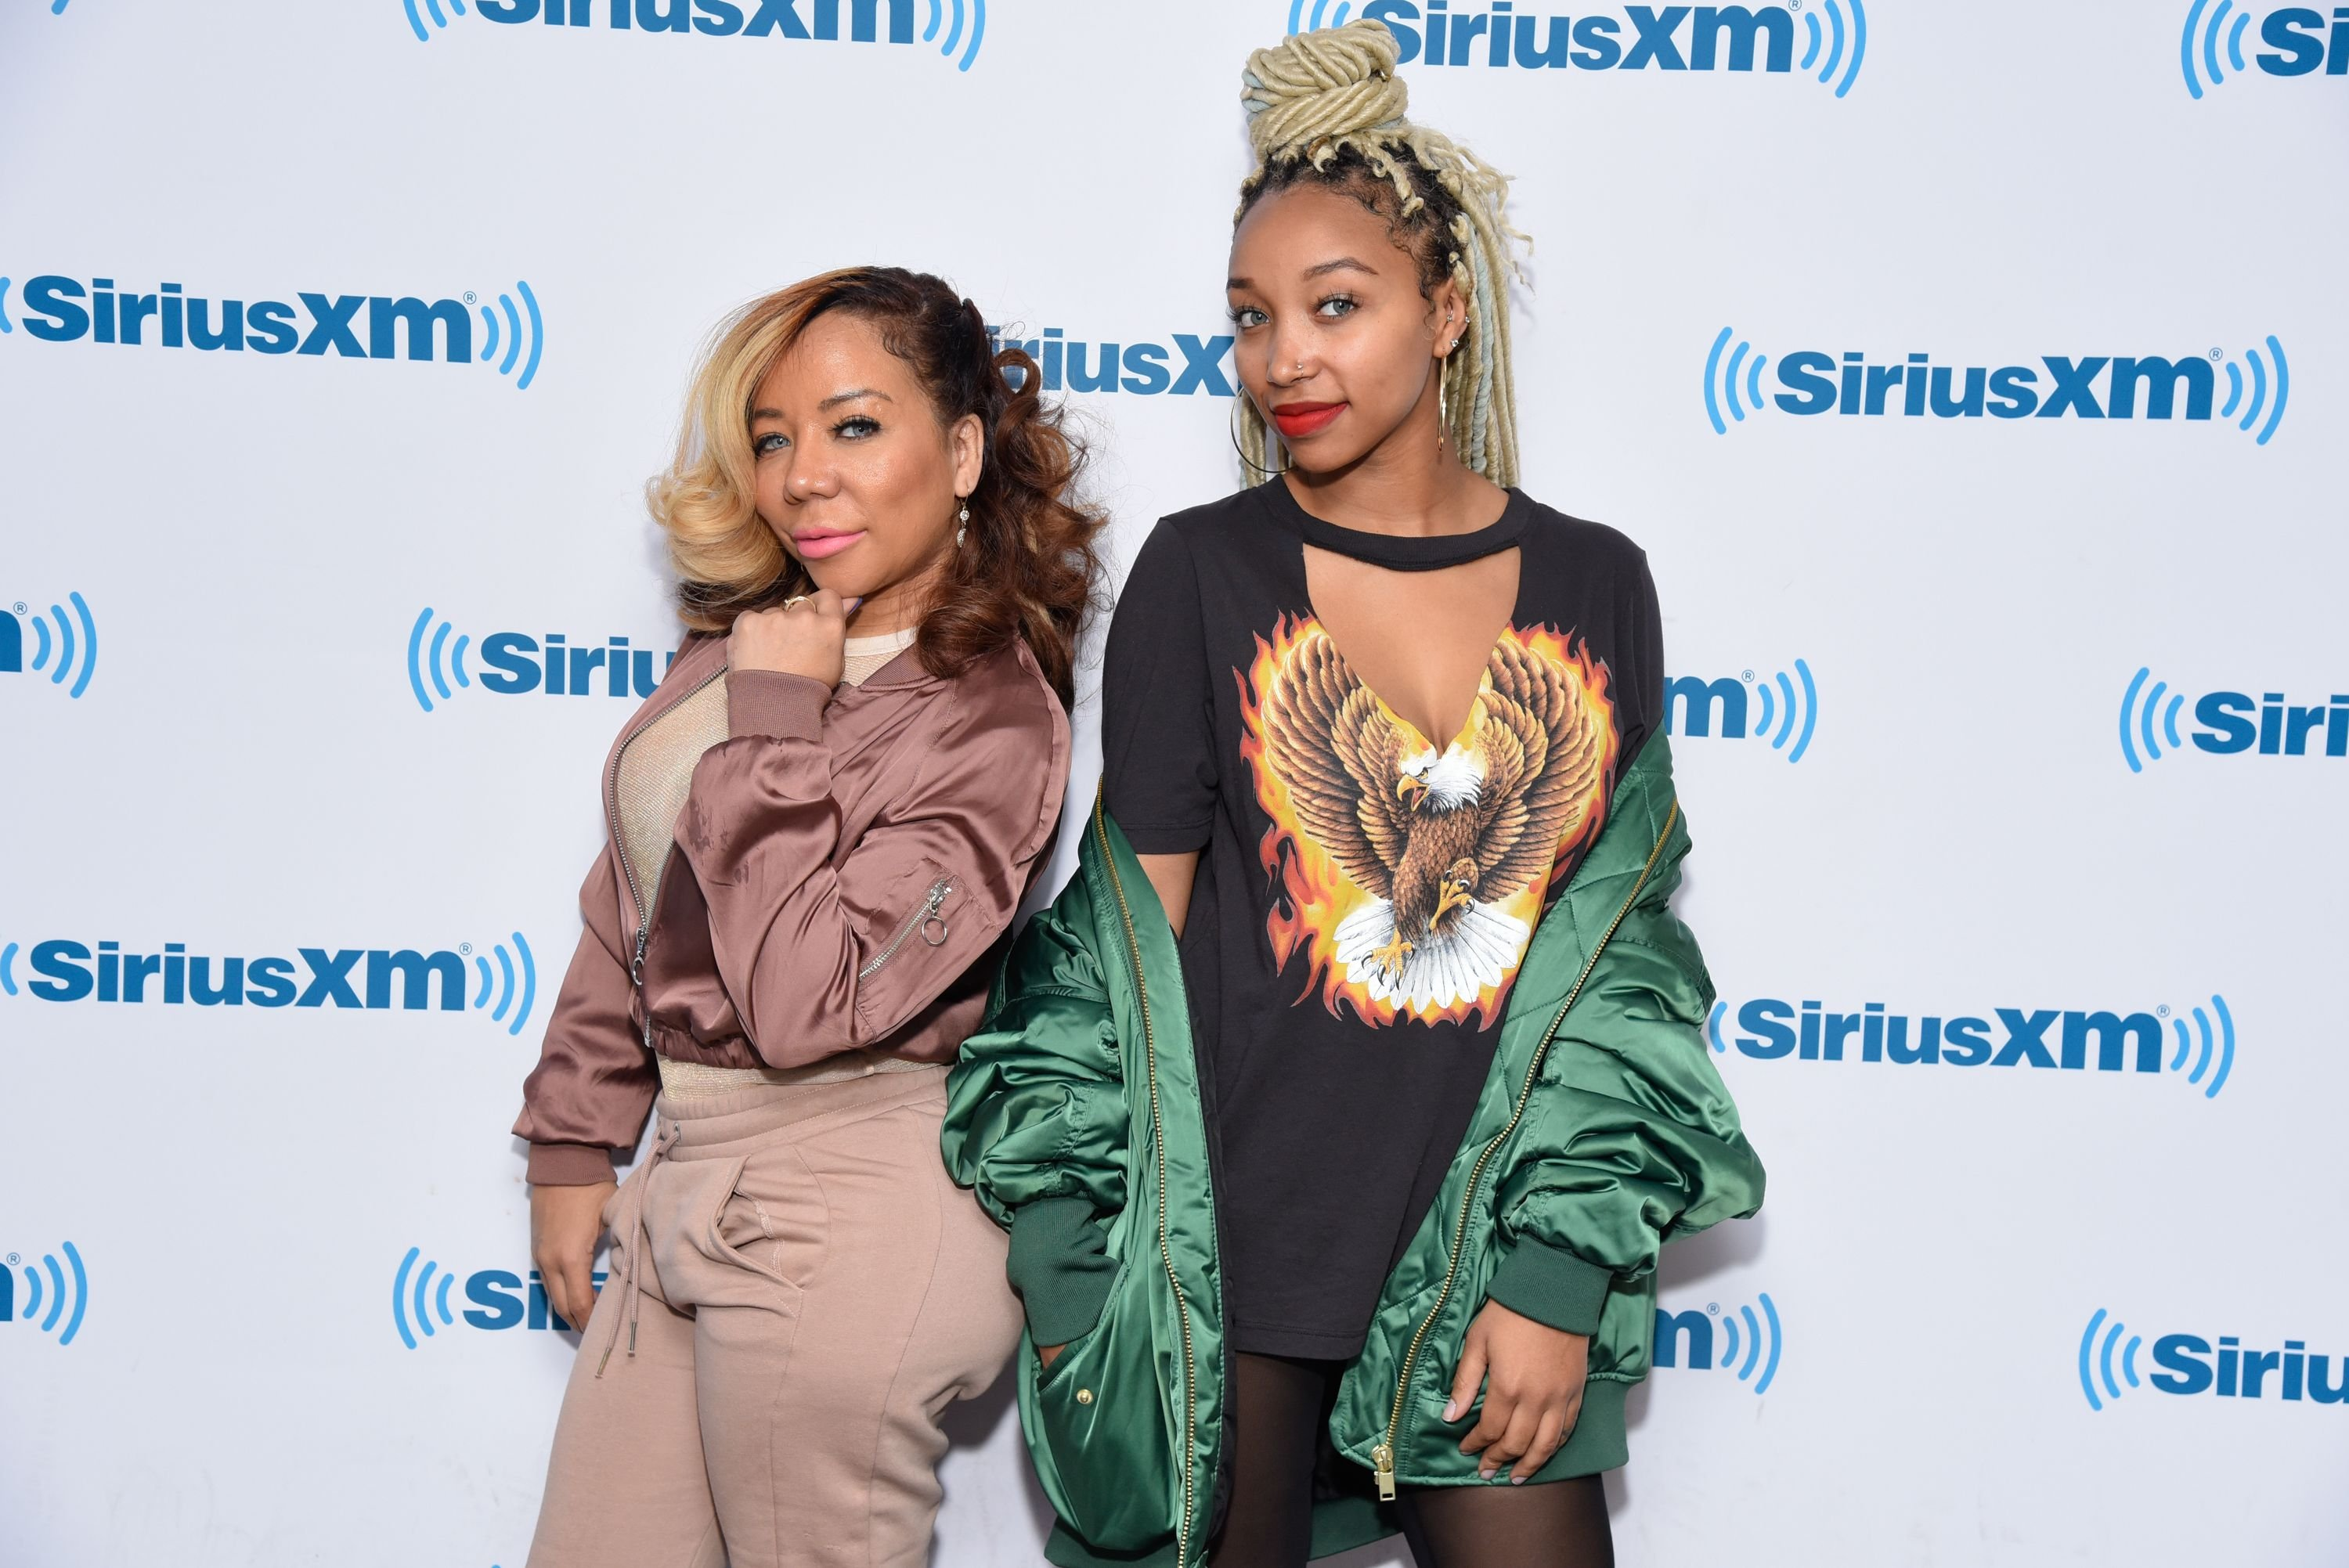 """Tameka """"Tiny"""" Harris (L) and Zonnique Jailee Pullins at the SiriusXM Studios on April 19, 2017 in New York City 